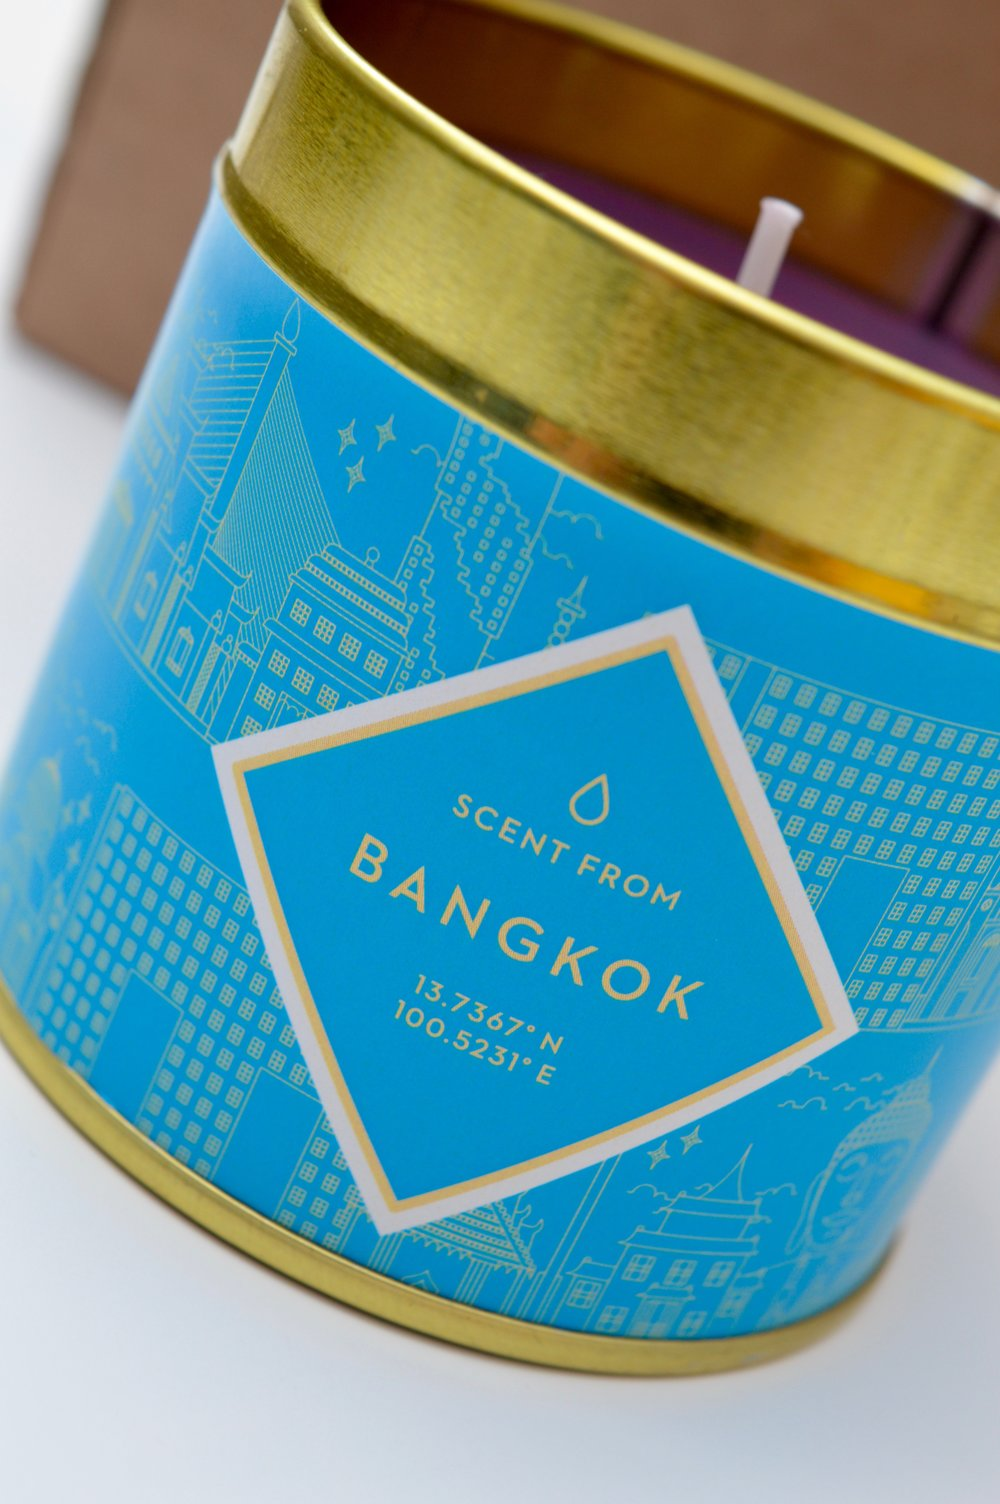 iwoot_scent_from_candle_subscription_box_the_Hut_Group_bangkok_elle_blonde_luxury_lifestyle_blog